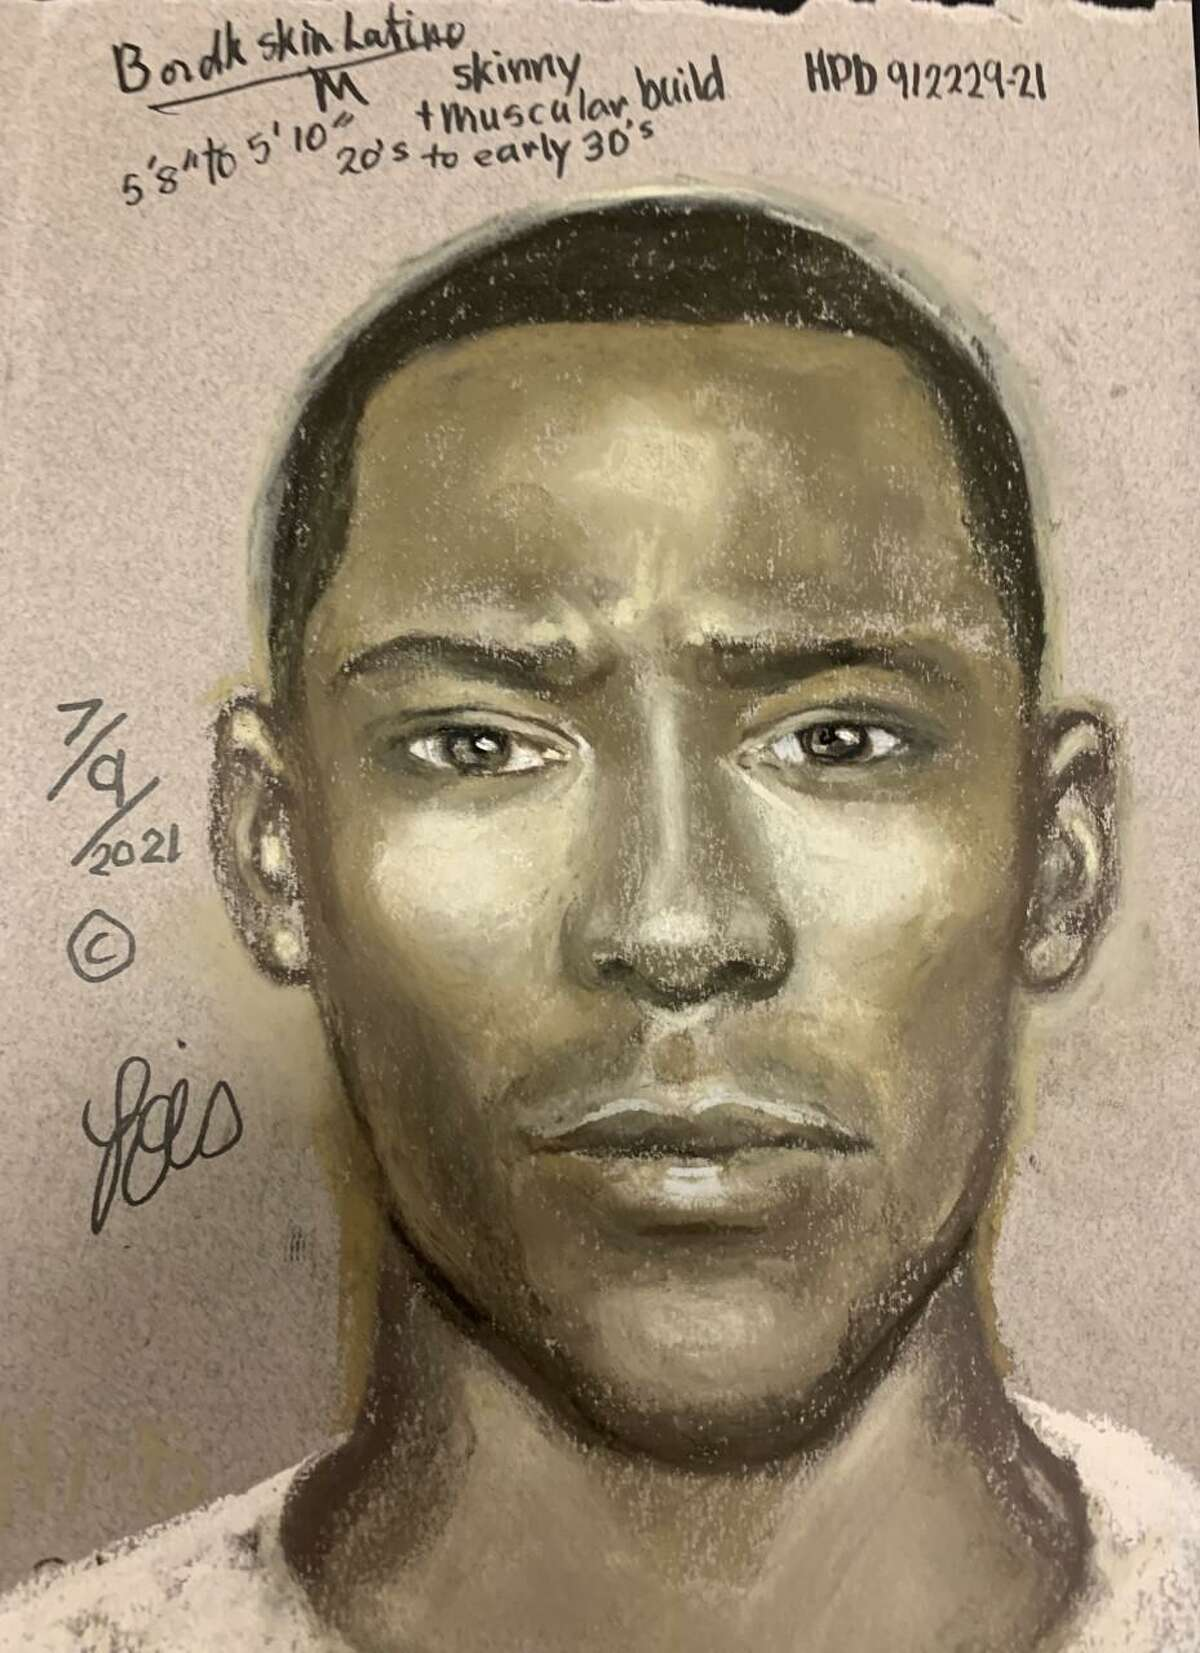 Houston police released a sketch of the suspect in a July 6 road rage shooting in which 17-year-old David Castro was killed on the way home from a Houston Astros game. Detectives are working to identify and locate the unidentified suspect.